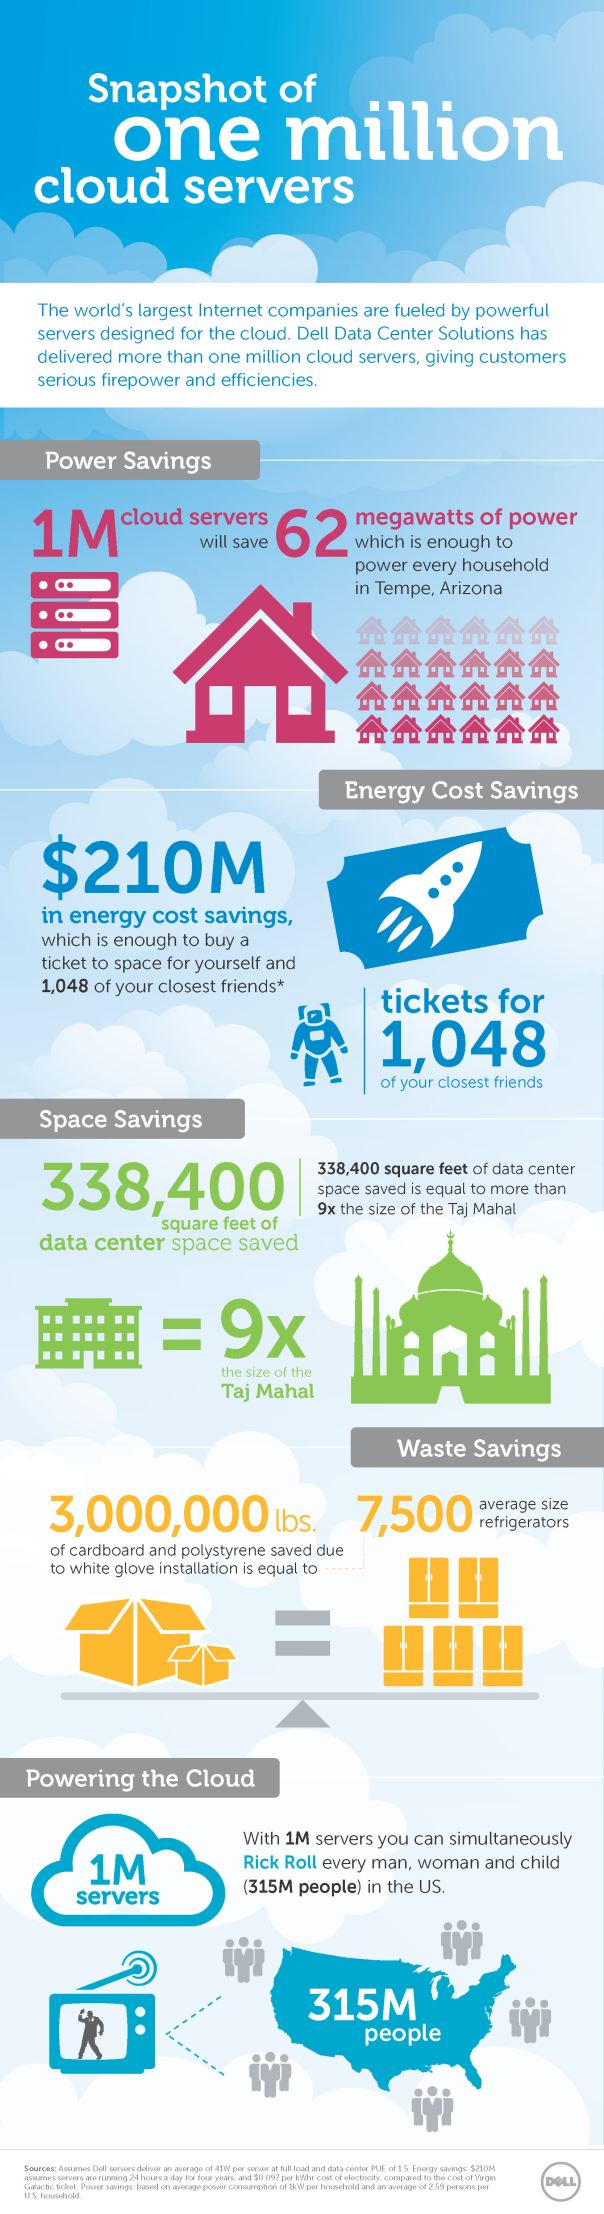 Dell DCS infographic